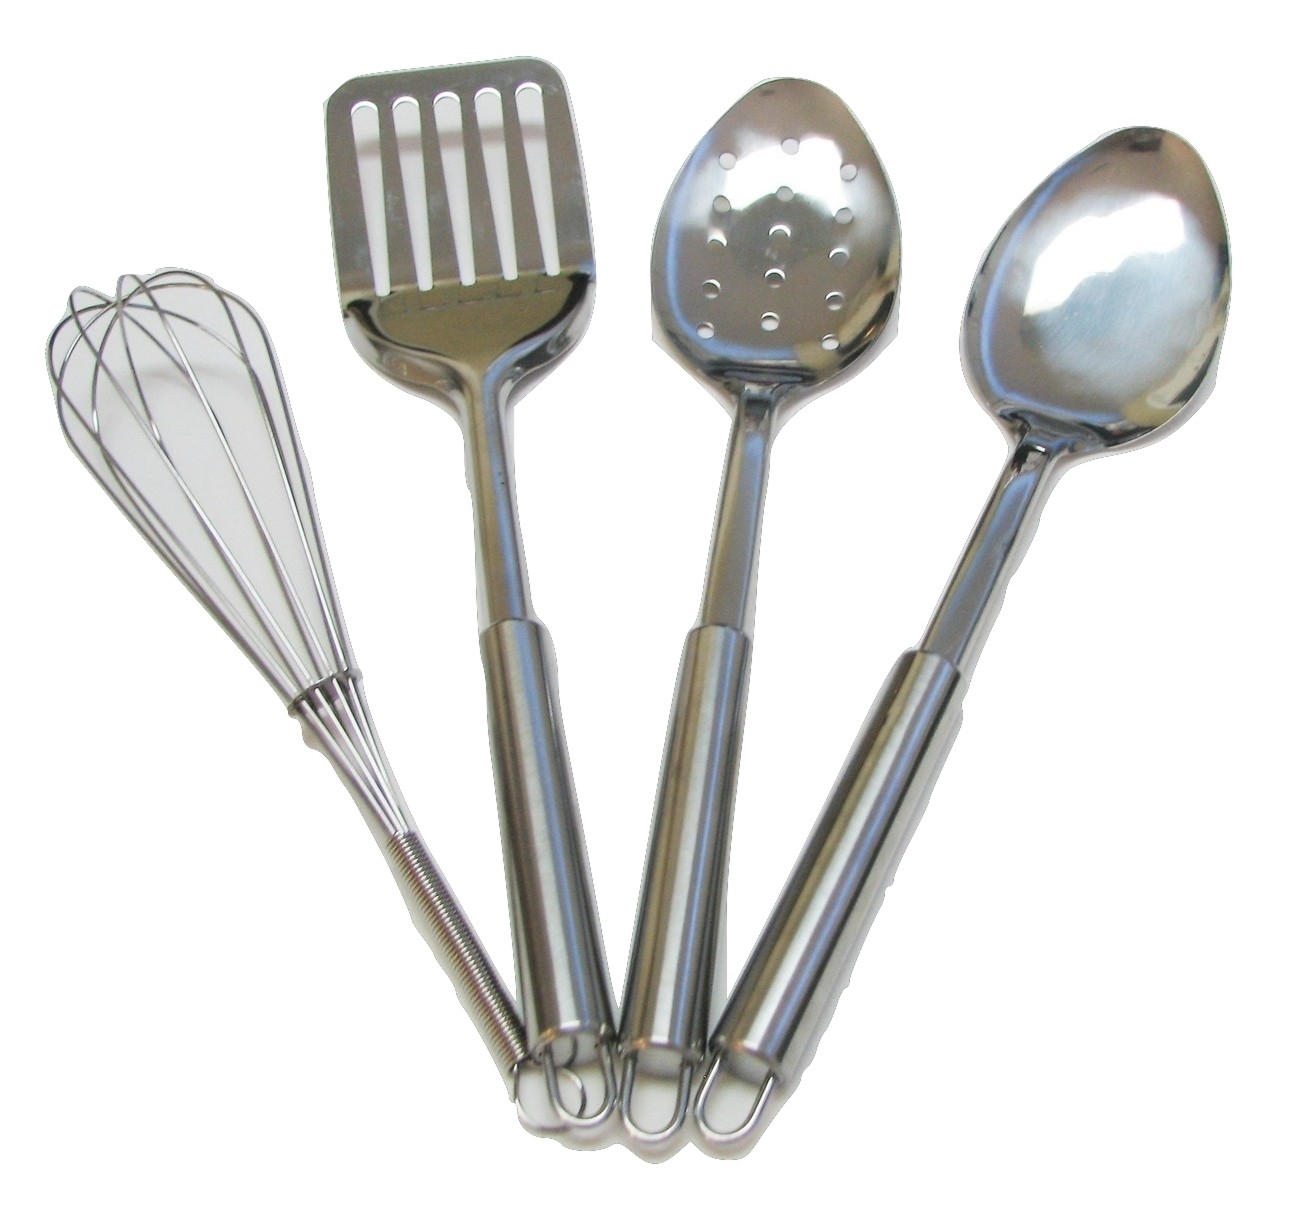 4 Piece Stainless Steel Kitchen Utensil Set And Similar Items